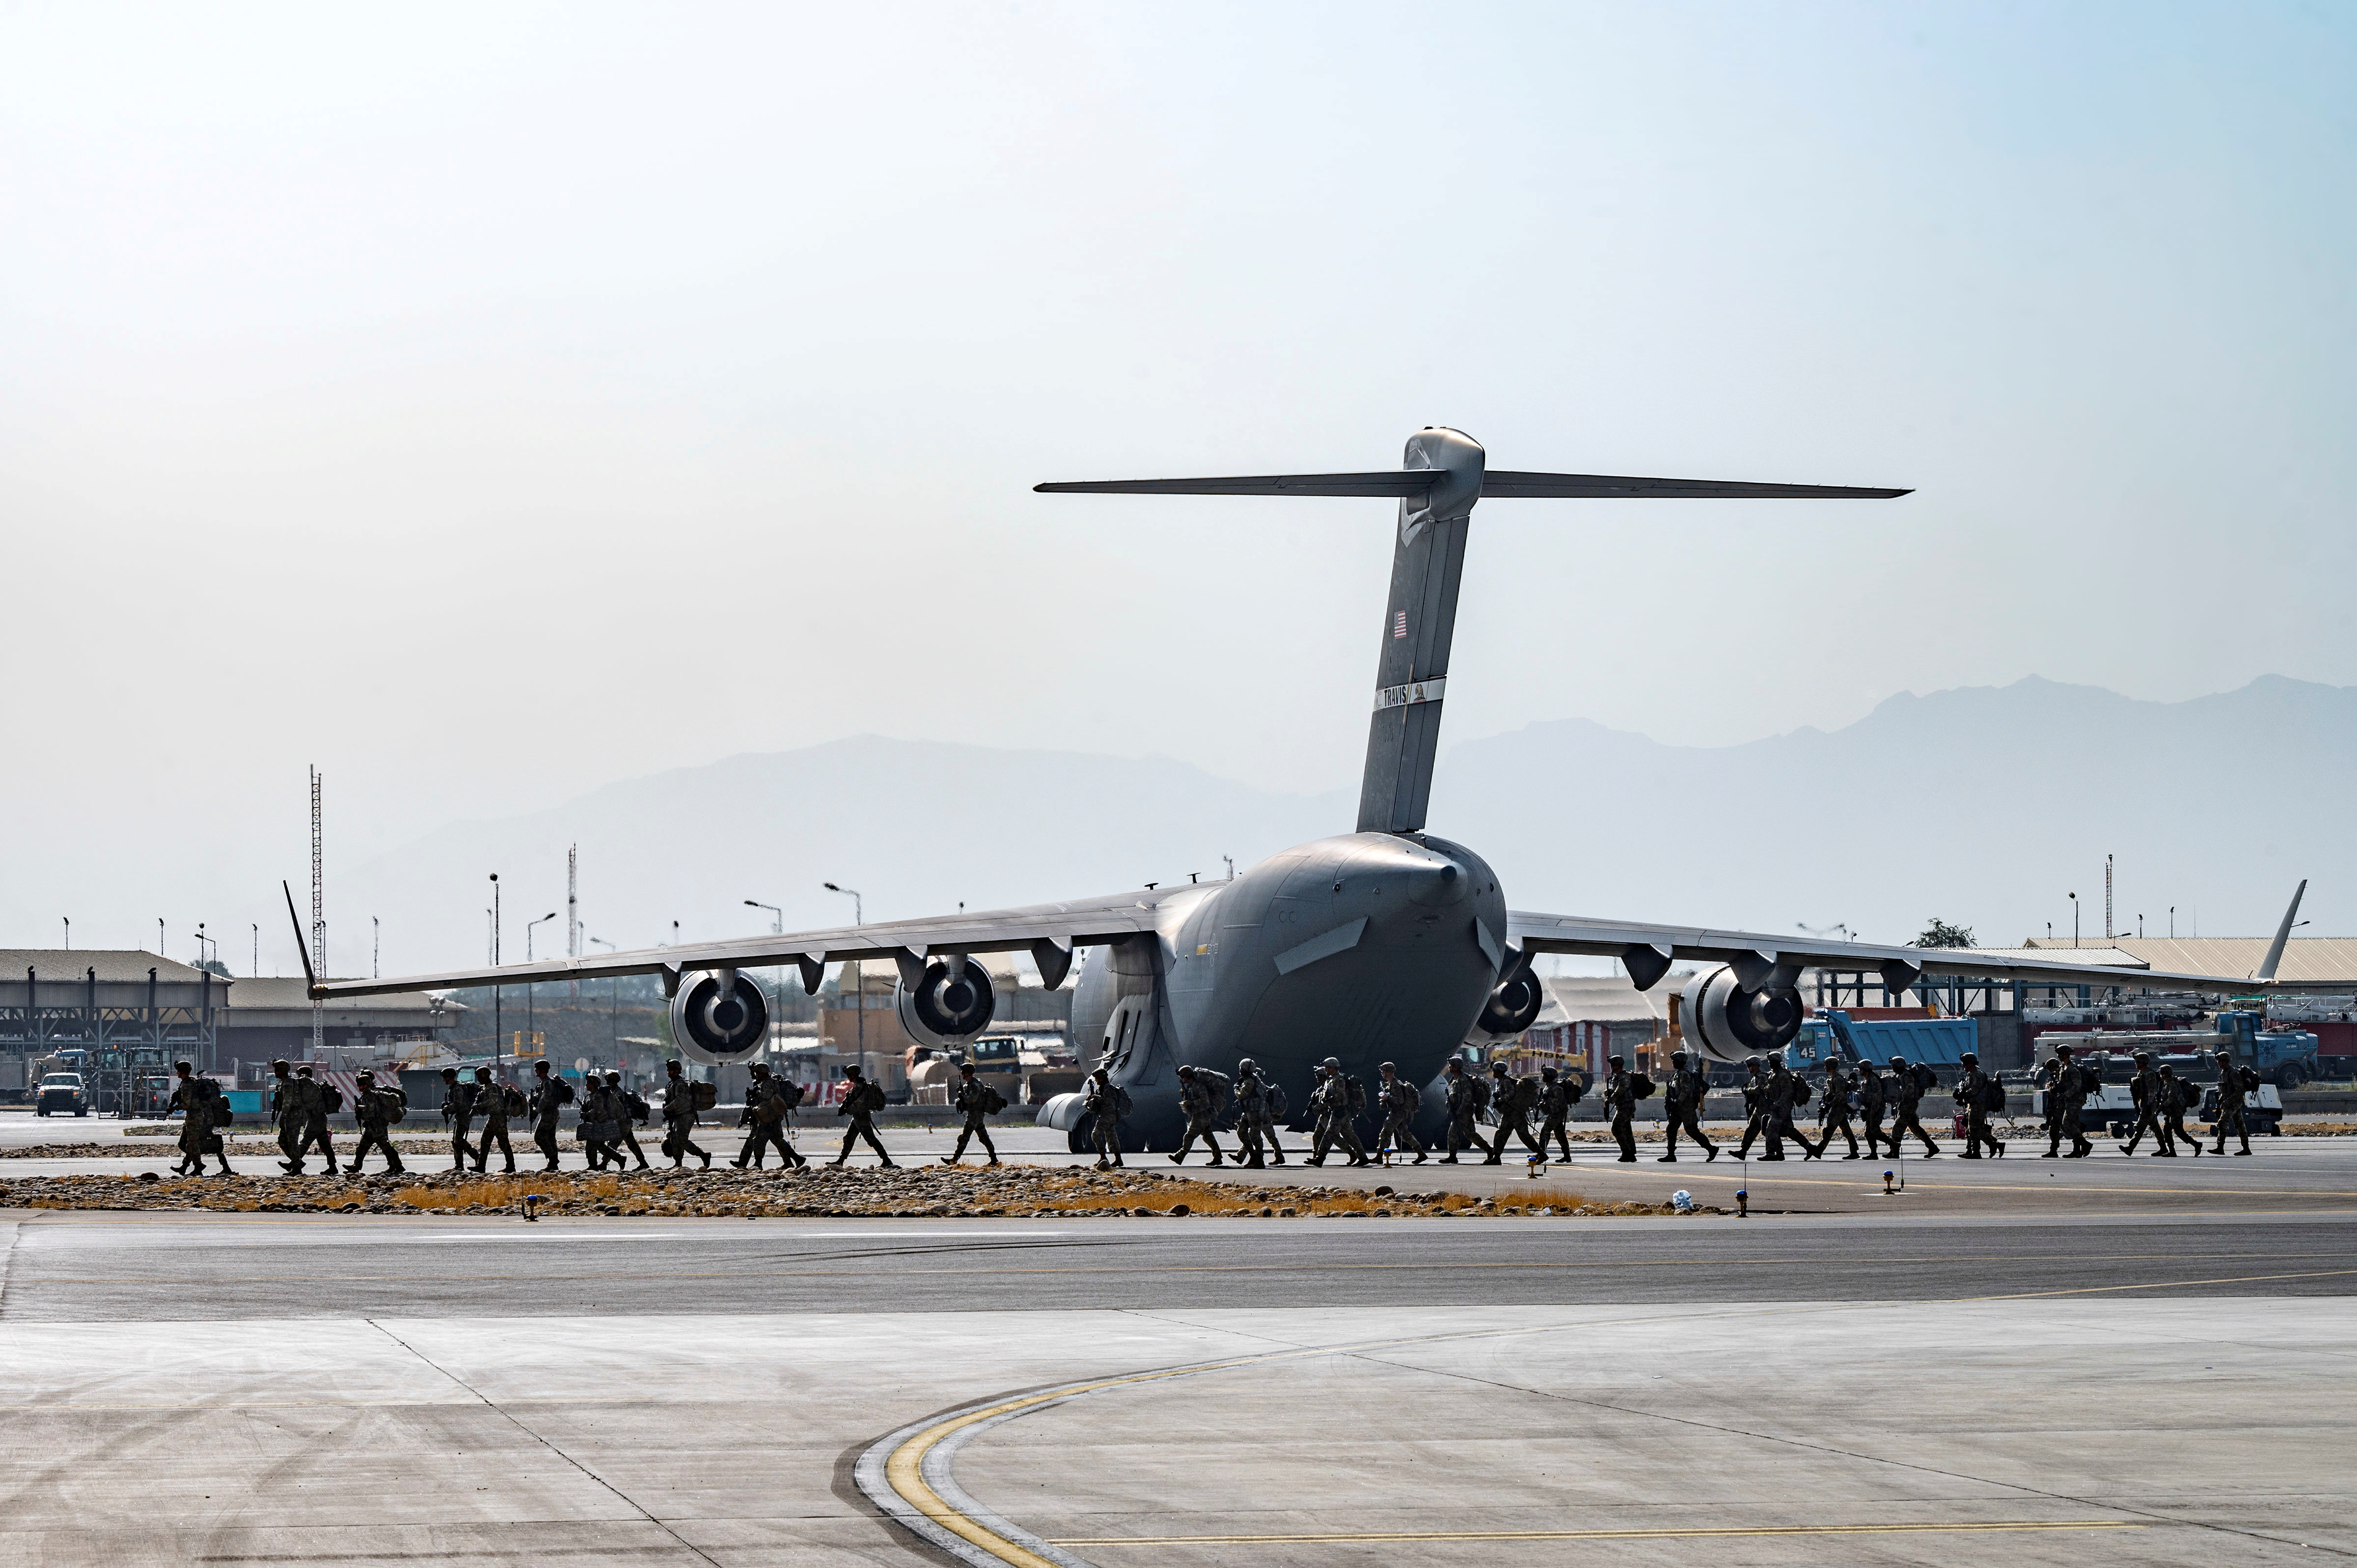 U.S. soldiers, assigned to the 82nd Airborne Division, arrive to provide security in support of Operation Allies Refuge at Hamid Karzai International Airport in Kabul, Afghanistan, August 20, 2021. Senior Airman Taylor Crul/U.S. Air Force/Handout via REUTERS /File Photo